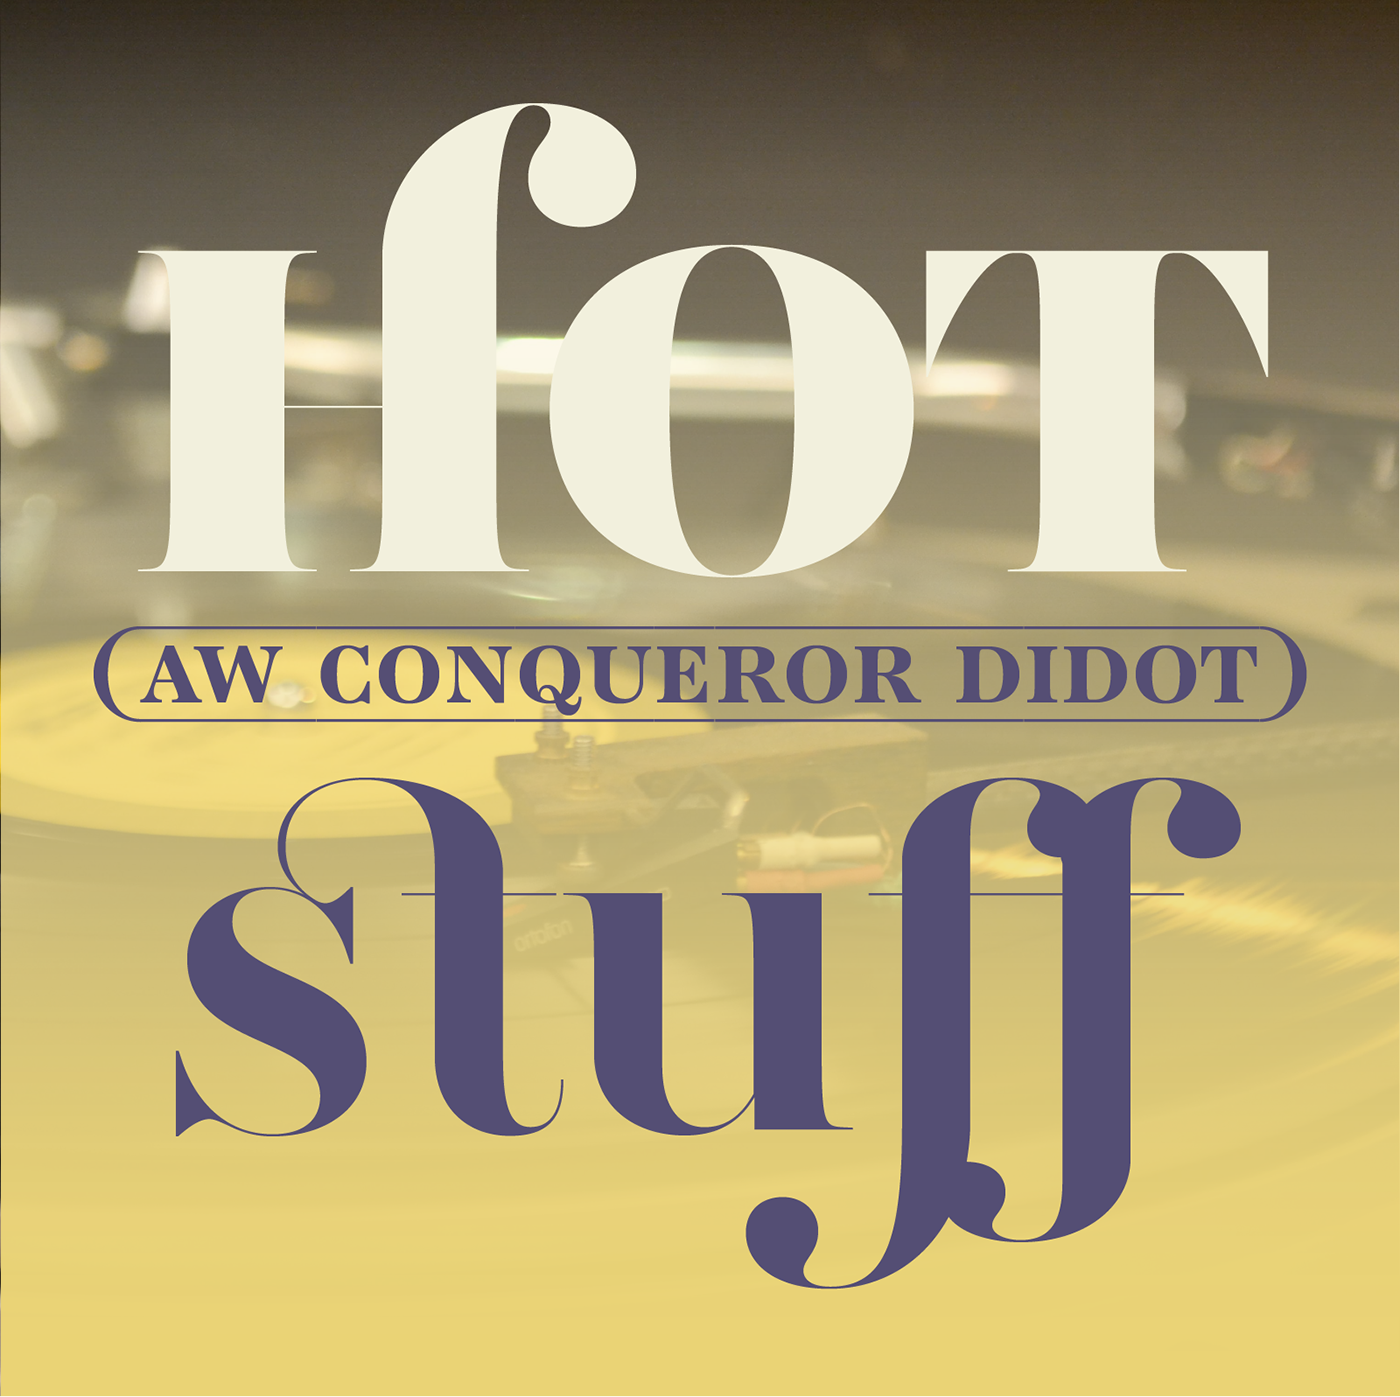 AW Conqueror Didot on Behance